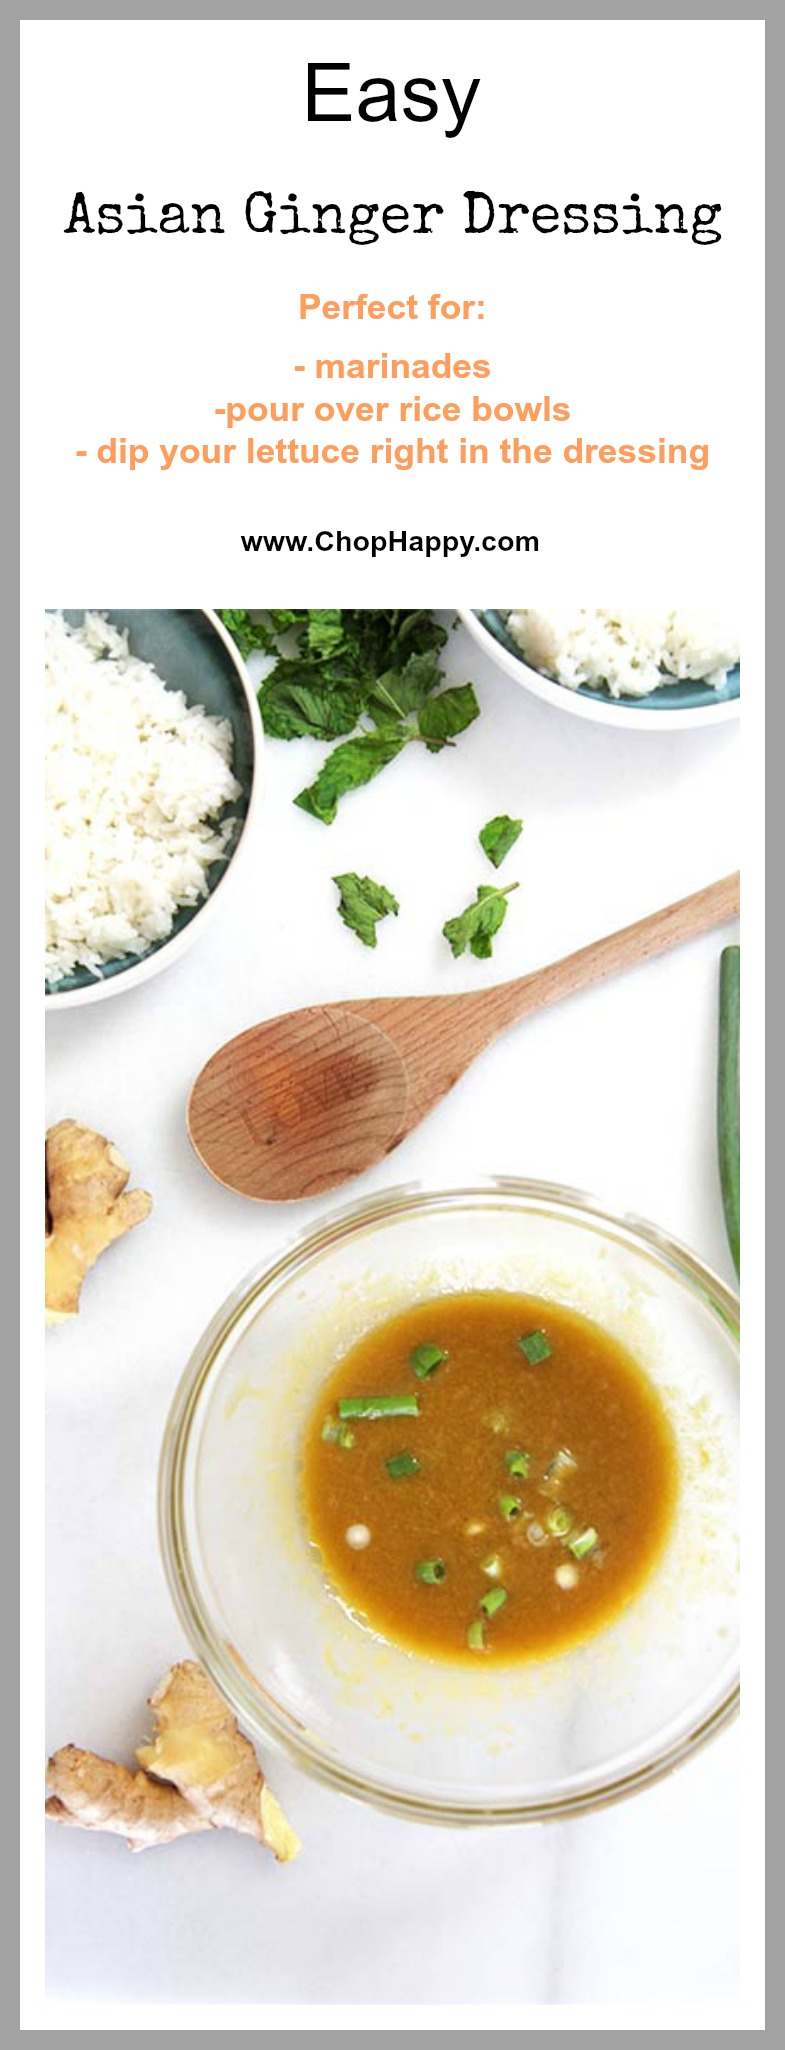 Simple Tangy Ginger Dressing Recipe-Get ready for a fun and quick Asian dressing that is so versatile! You can use it as a salad dressing, marinade for chicken, or on a rice bowl. Best part it takes less then 10 minutes to make. www.ChopHappy.com